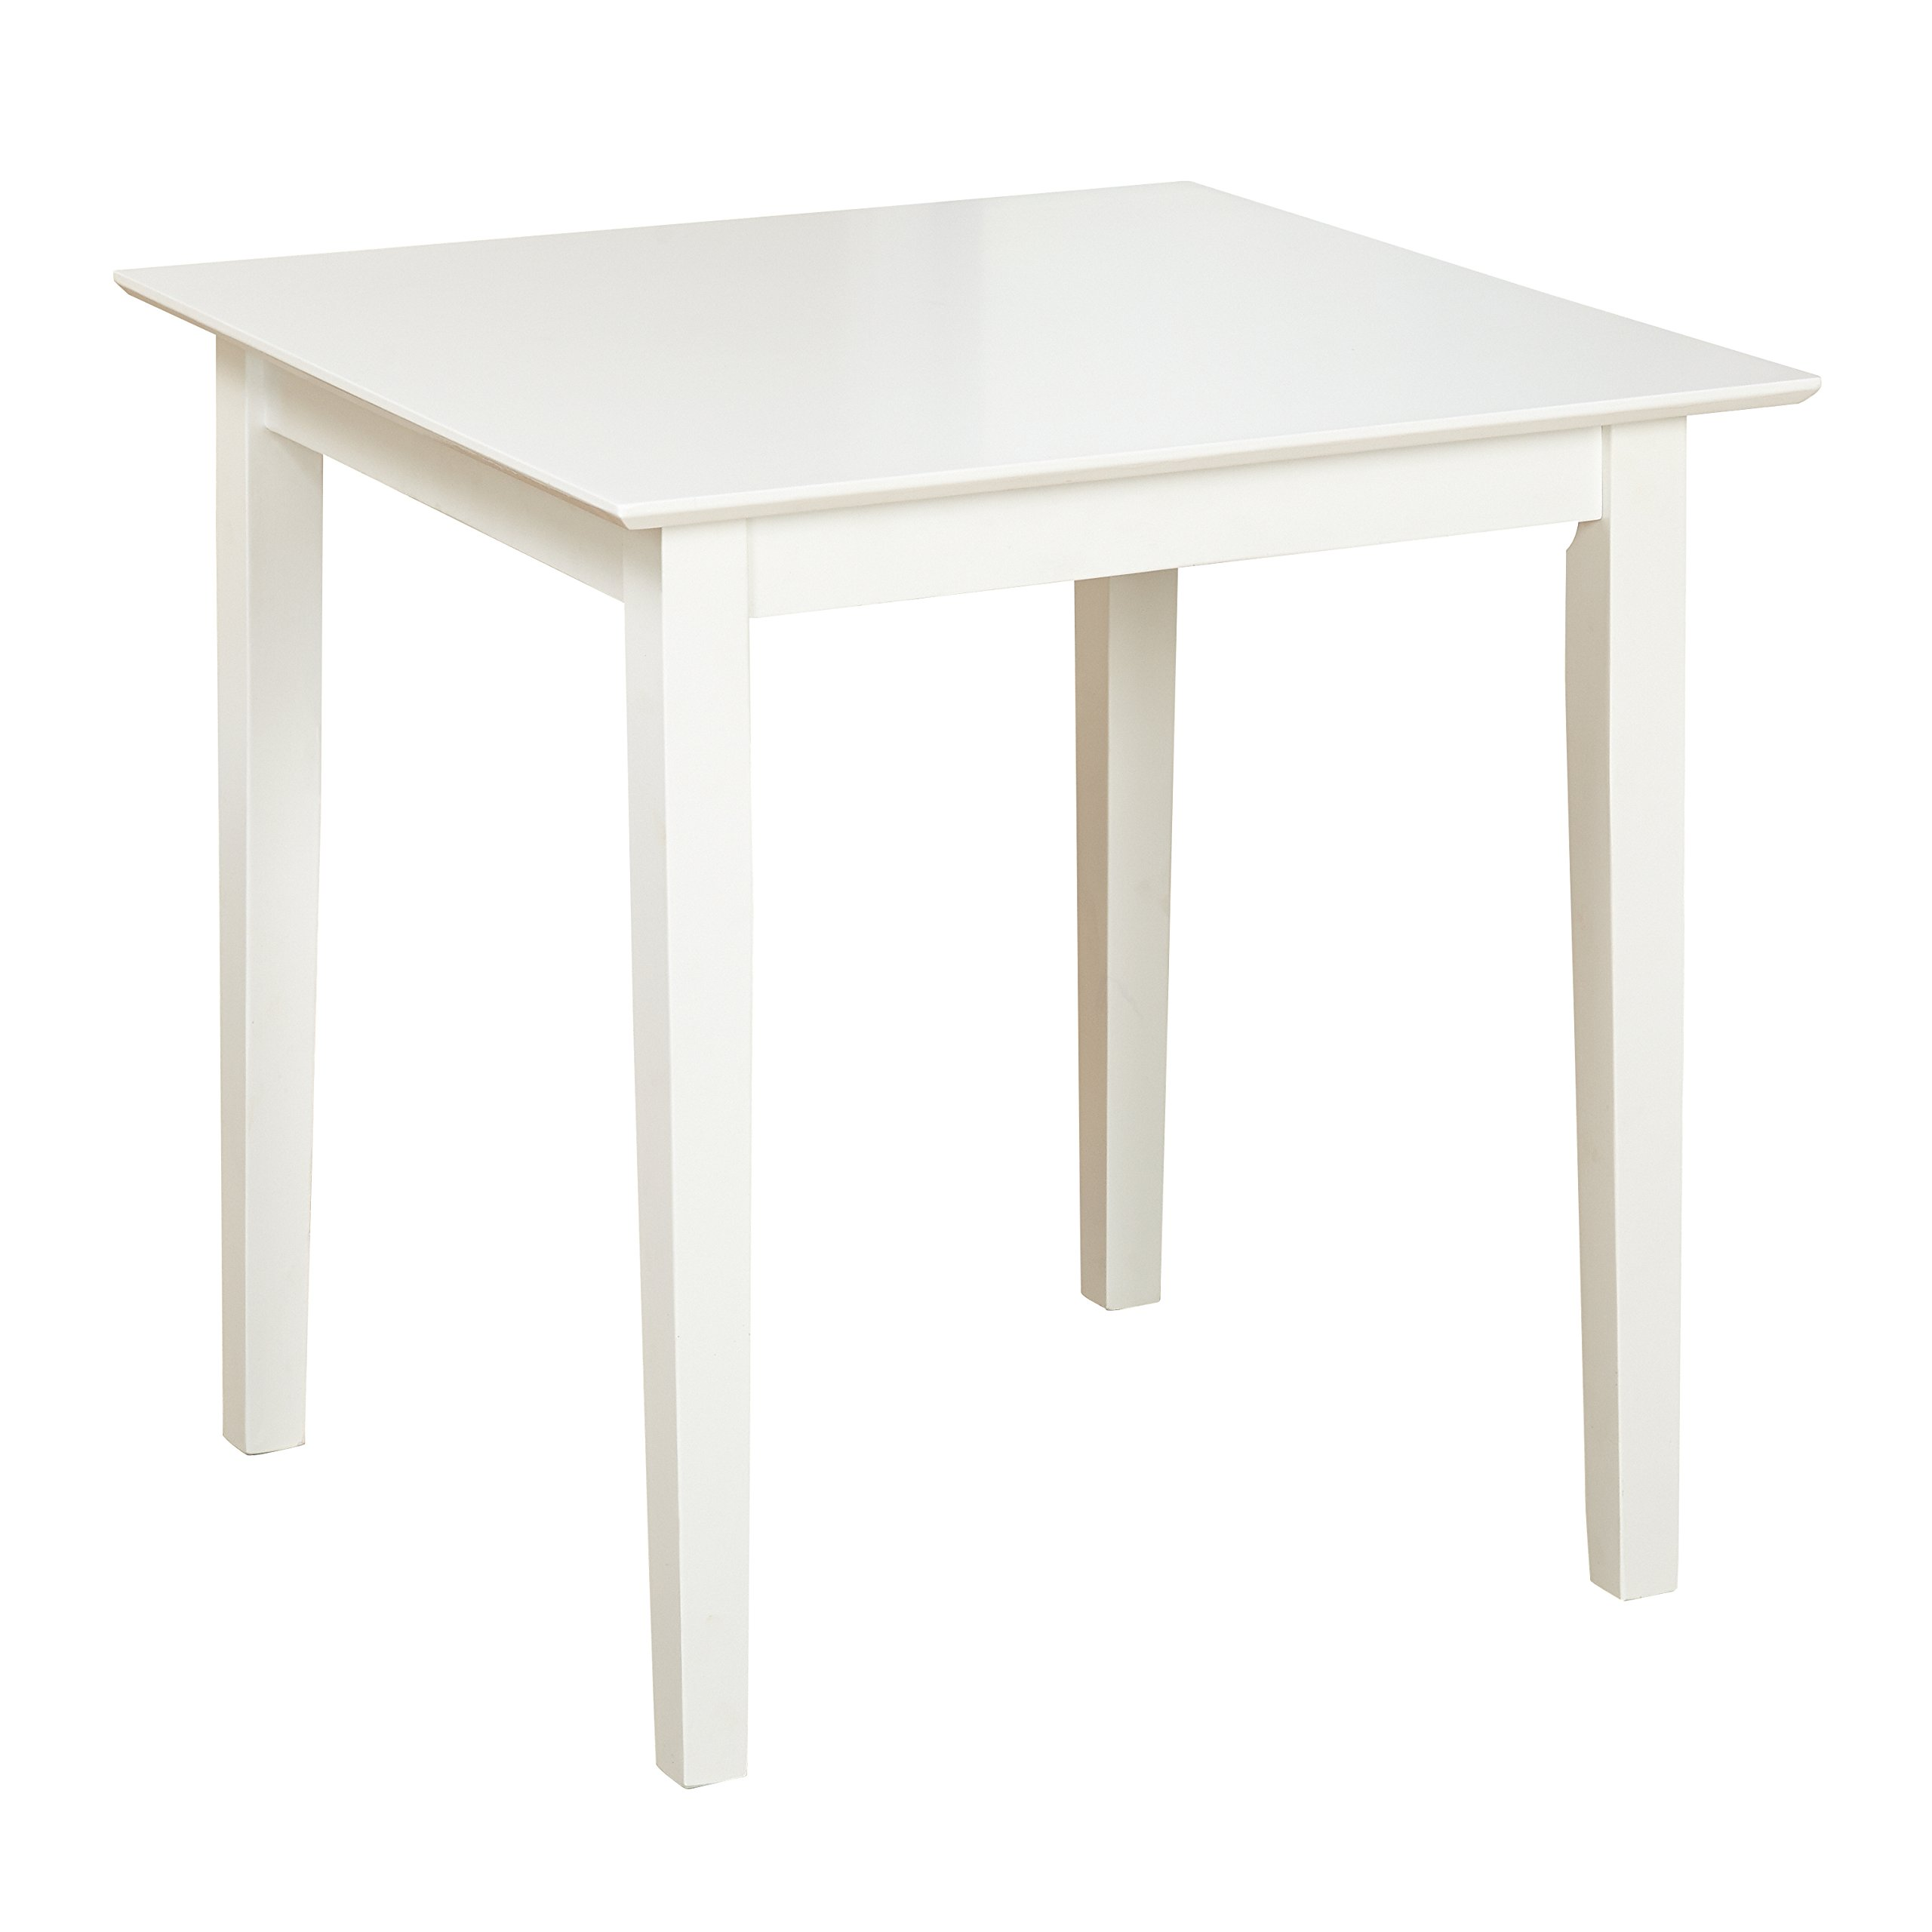 Target Marketing Systems 40607WHT Udine Dining Table, White